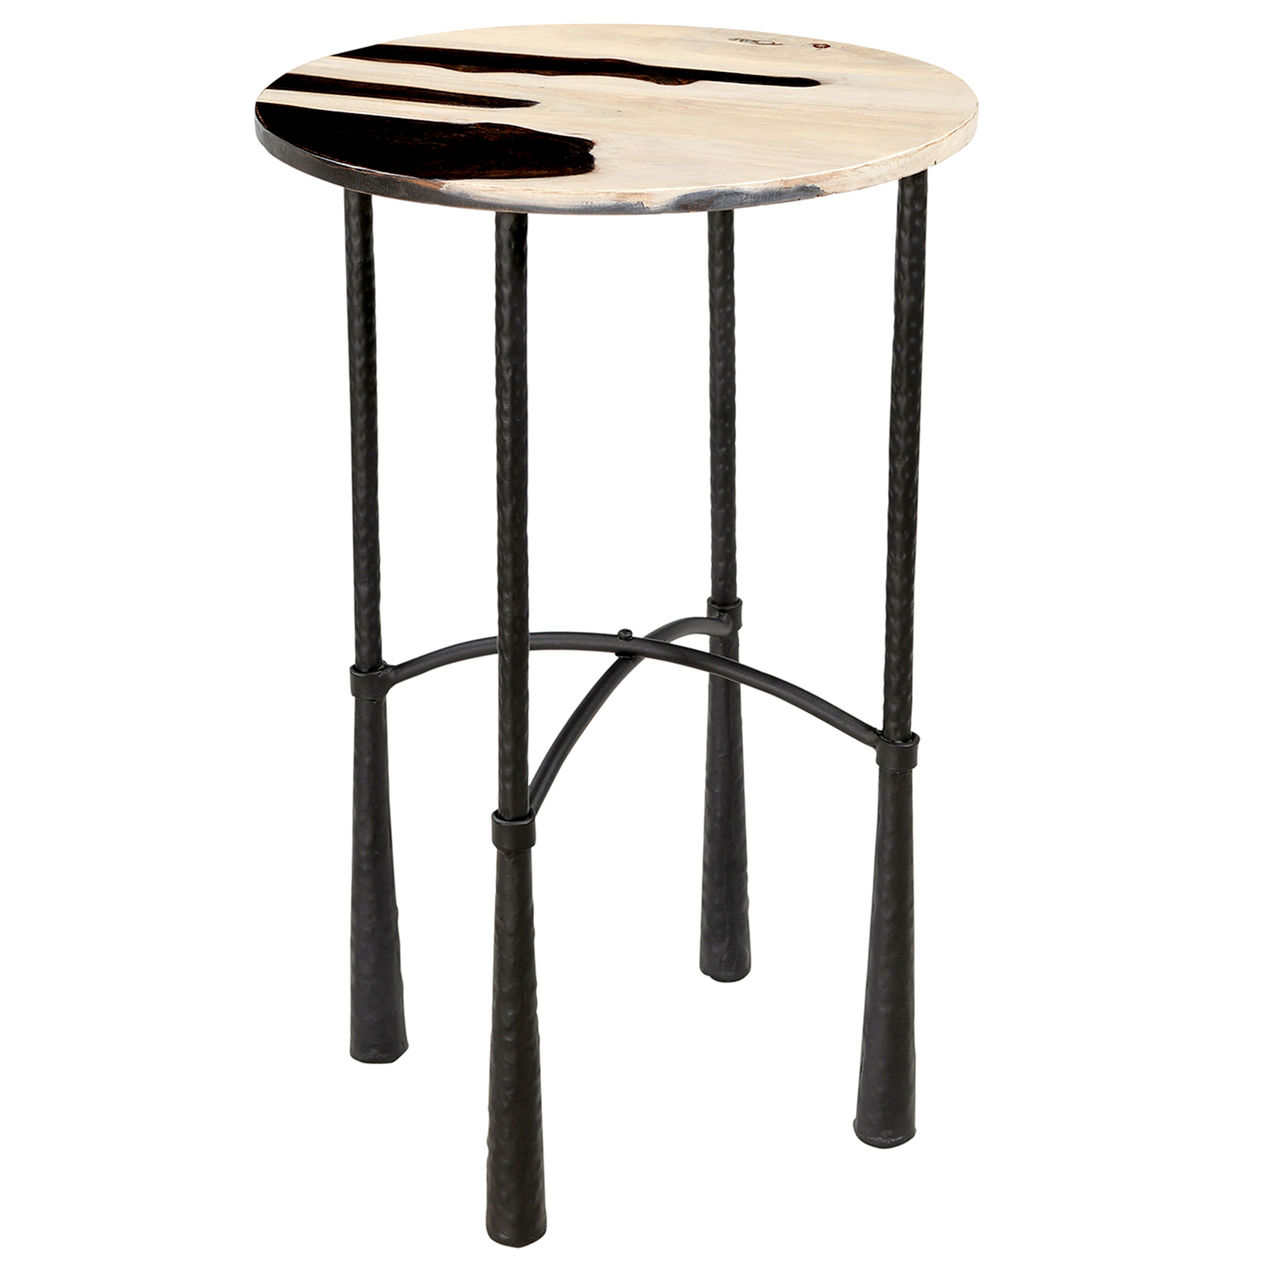 zebra accent table home cherry wood dinner pier one dining room tables west elm knock off wall mounted narrow rectangular side piece modern interior design ideas teal coffee vitra